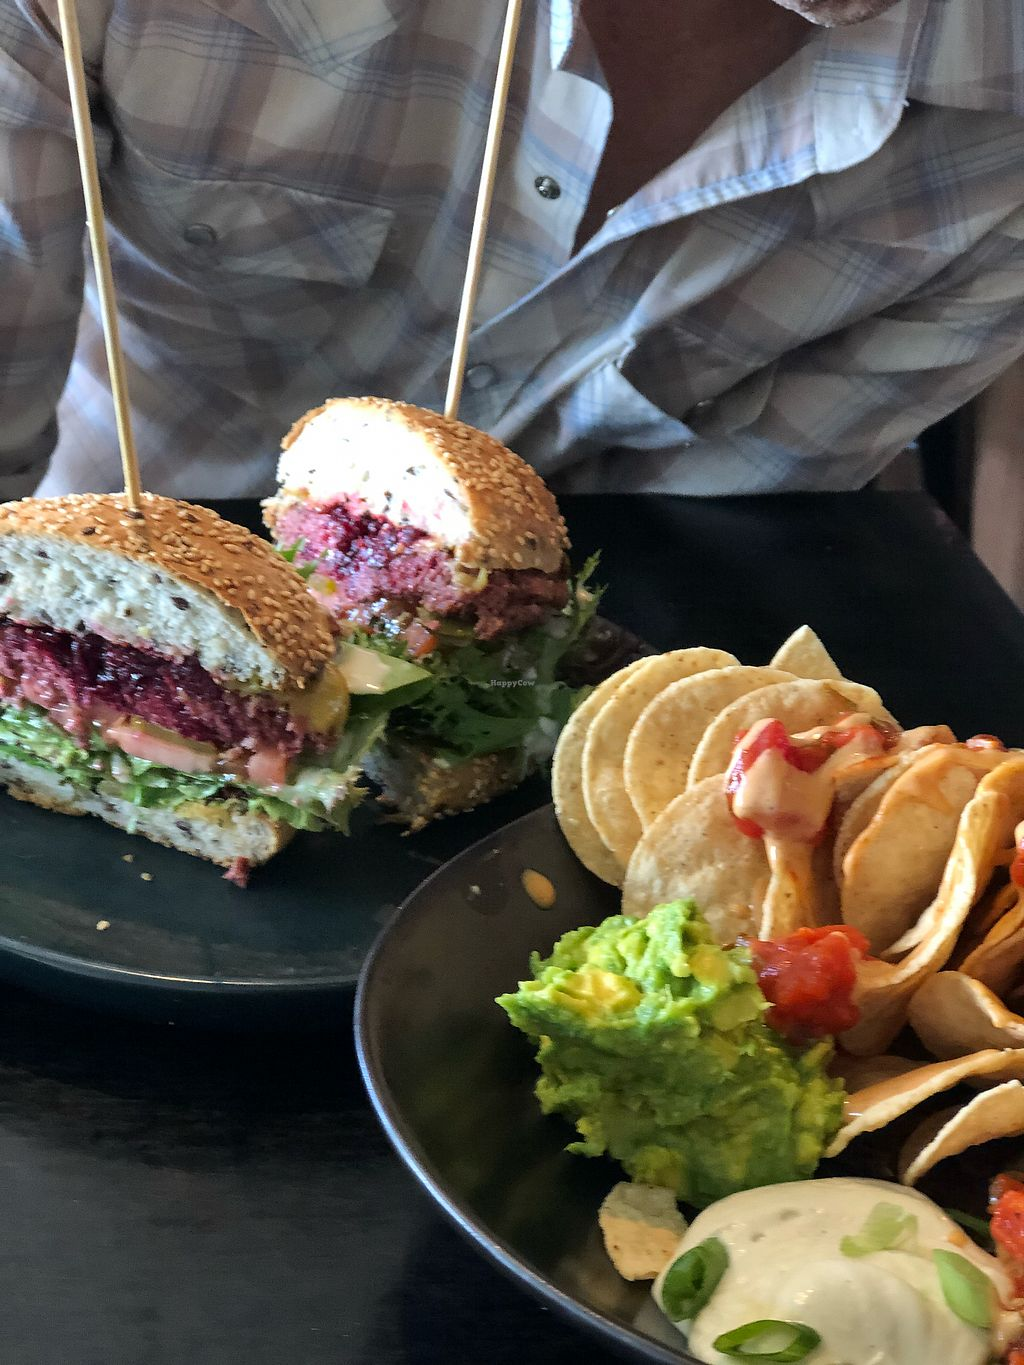 """Photo of Island Whole Foods  by <a href=""""/members/profile/EmilieZoeyBaker"""">EmilieZoeyBaker</a> <br/>Nachos and non beef burger <br/> March 17, 2018  - <a href='/contact/abuse/image/67701/371676'>Report</a>"""